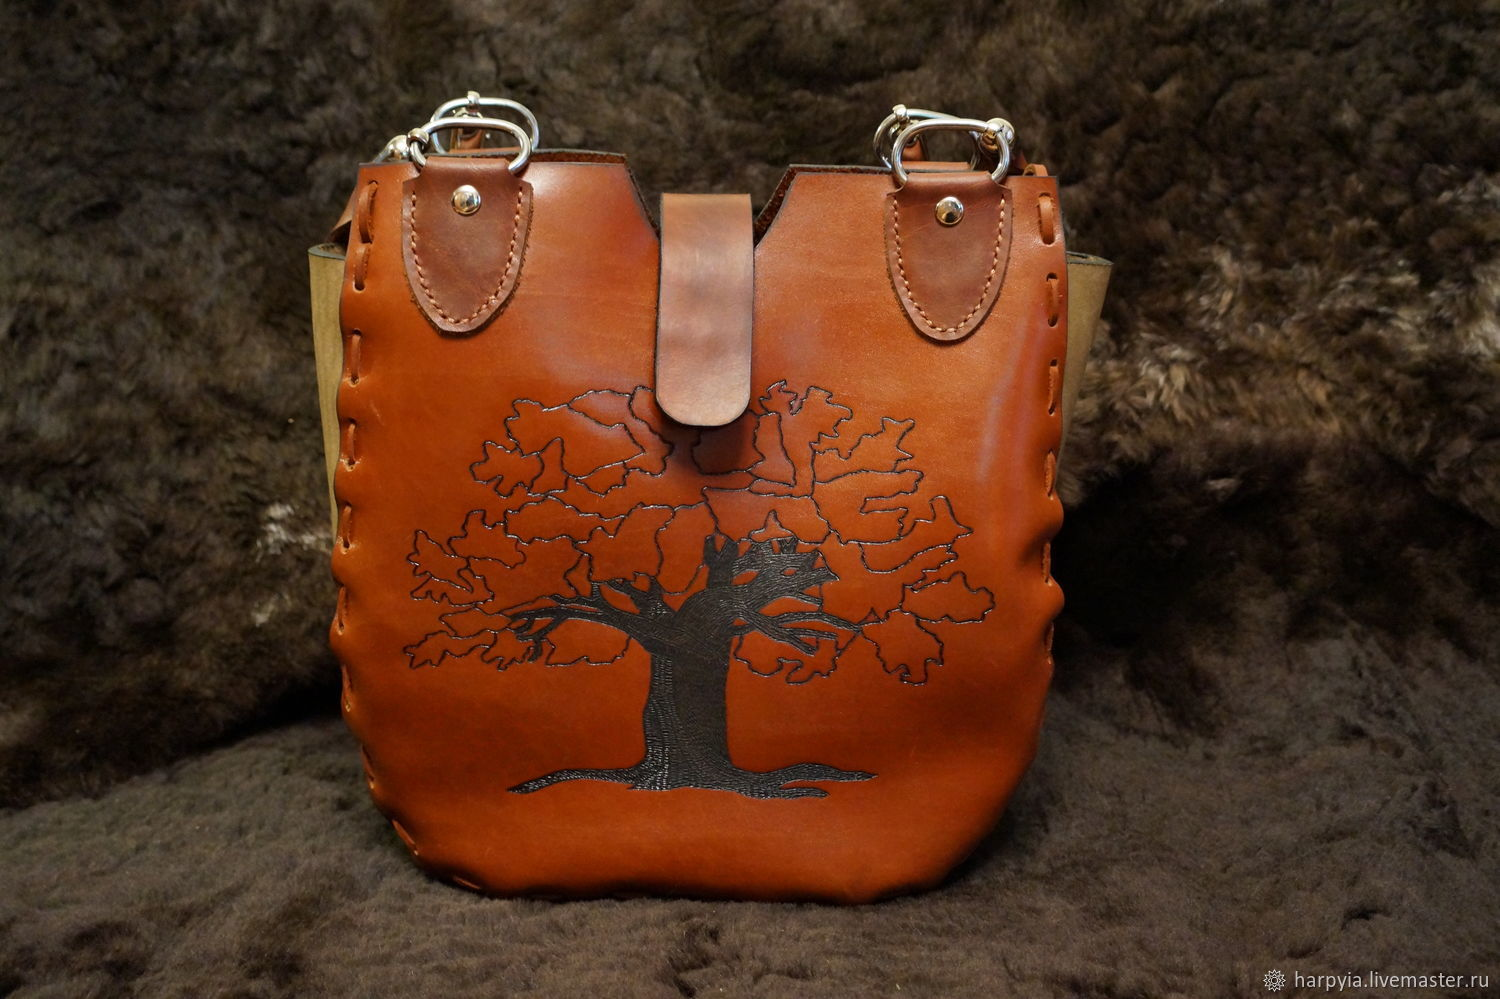 Leather Bag with Pyrography Tree,Handmade,Leather Tote,Totes,handmade, Classic Bag, Moscow,  Фото №1